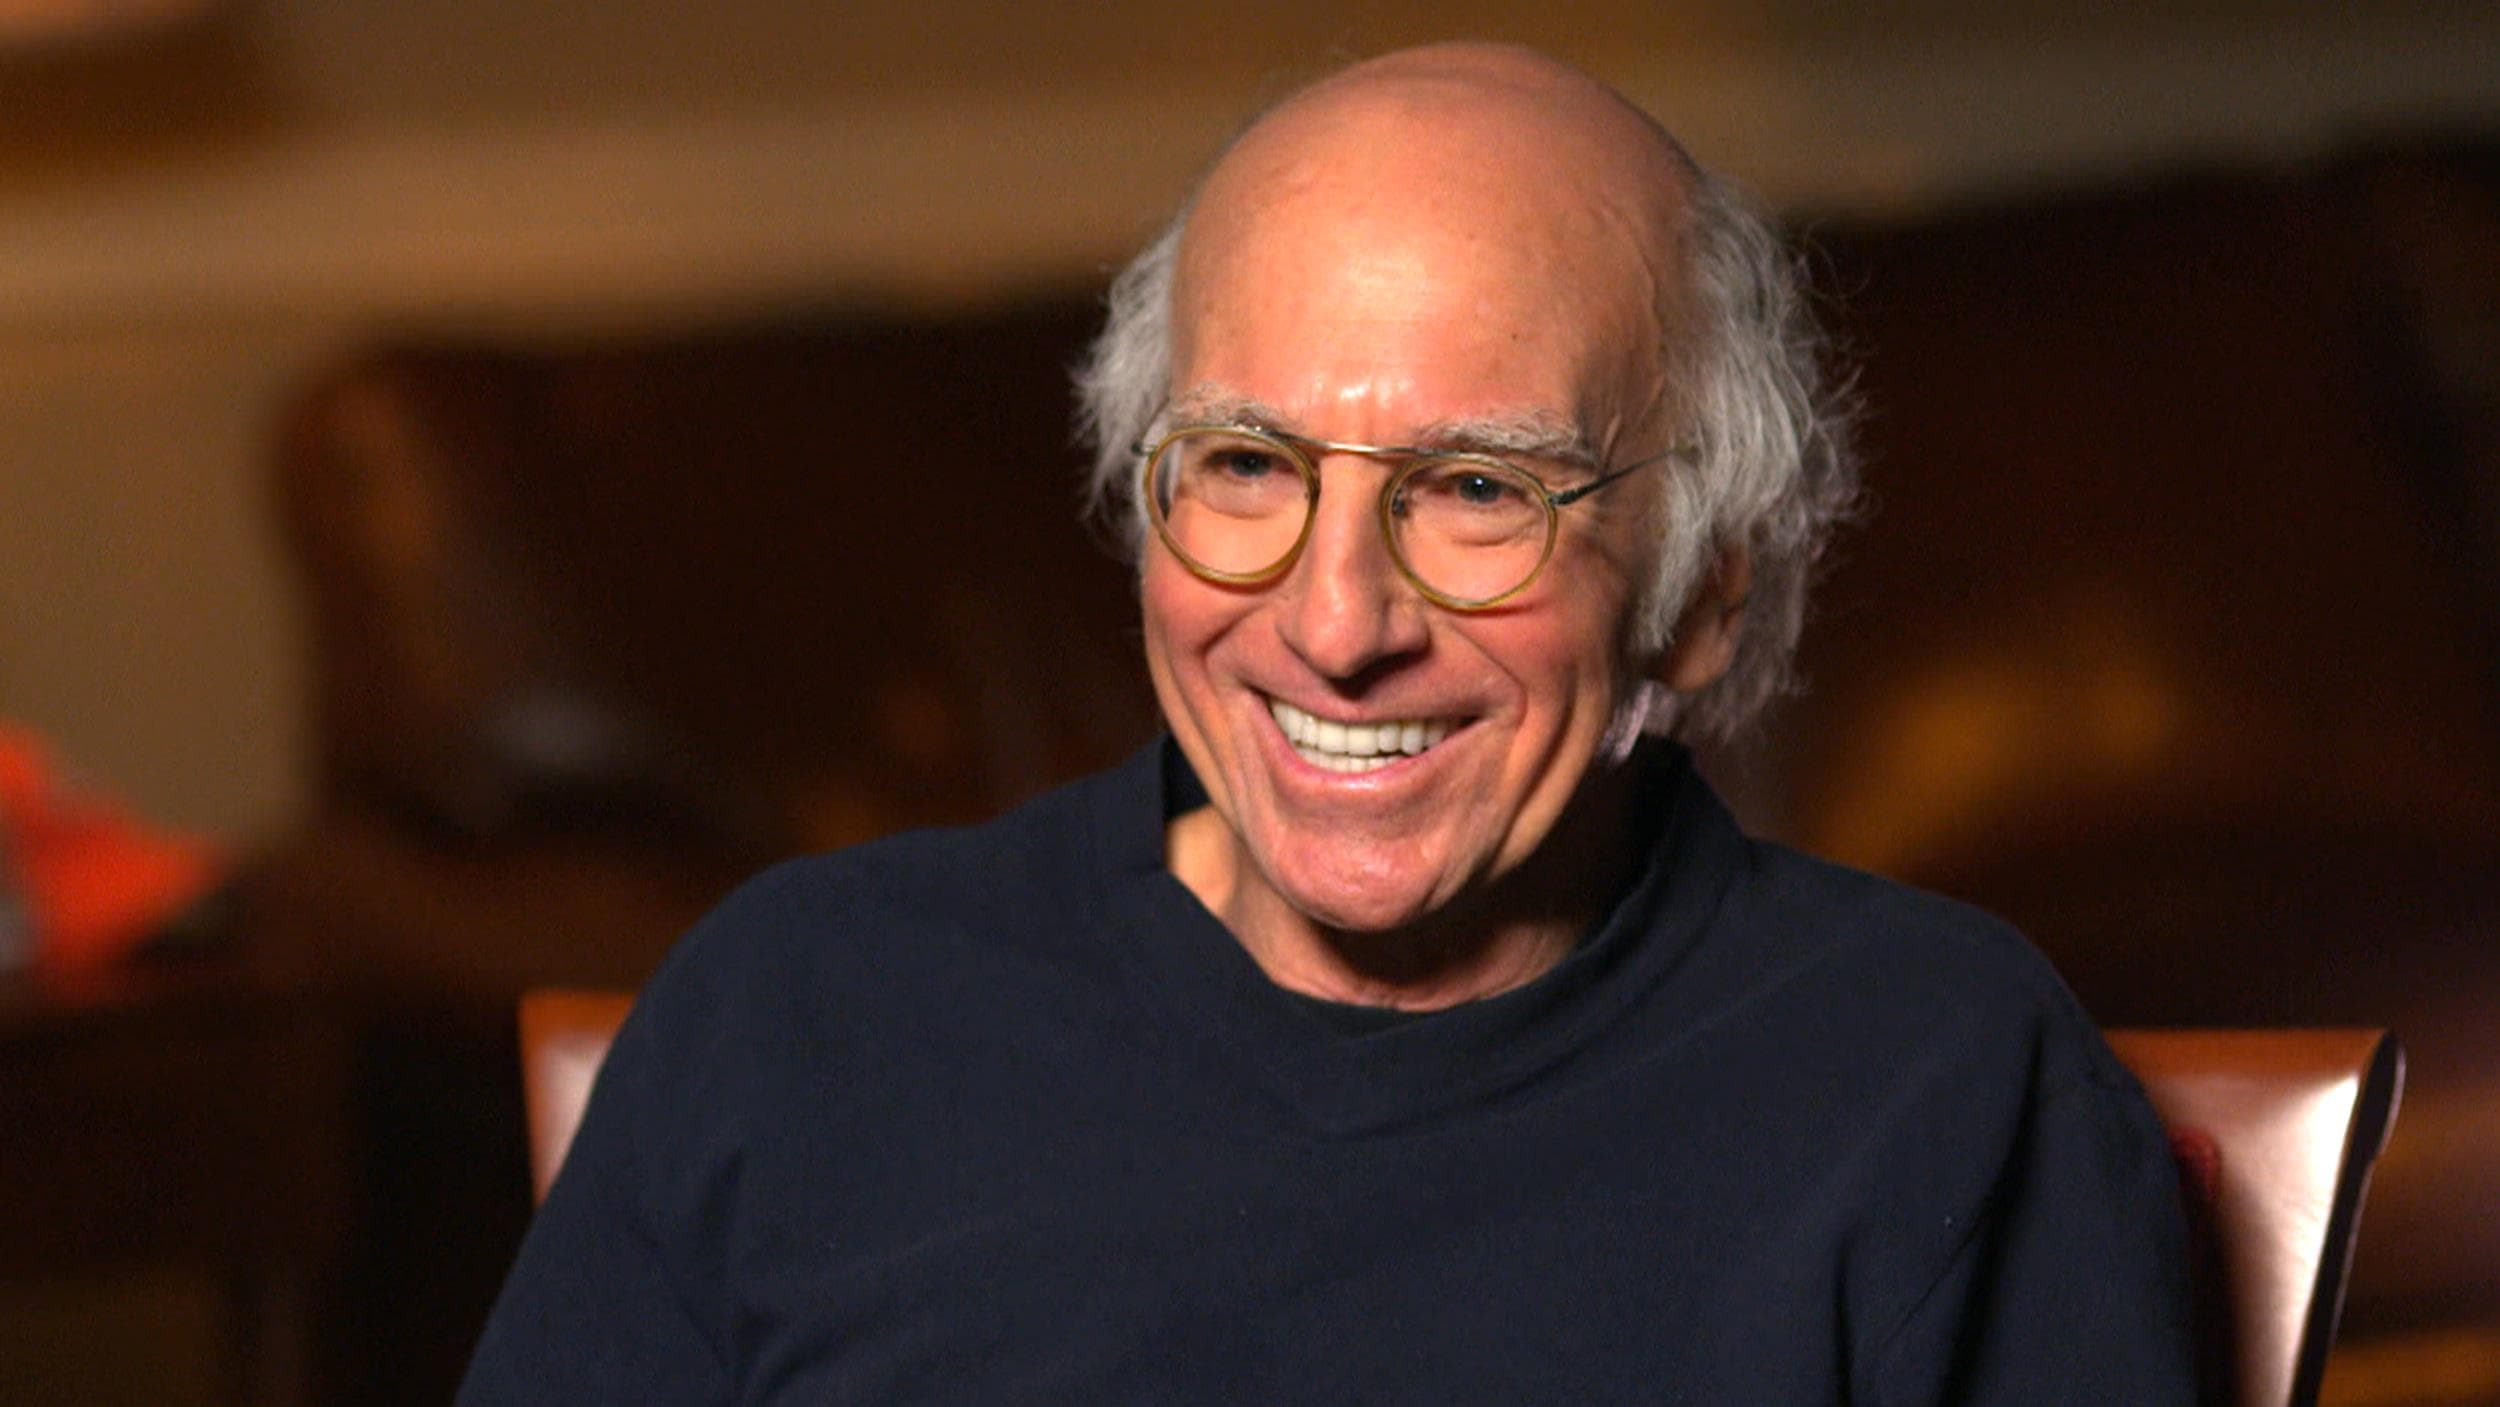 Larry David Background